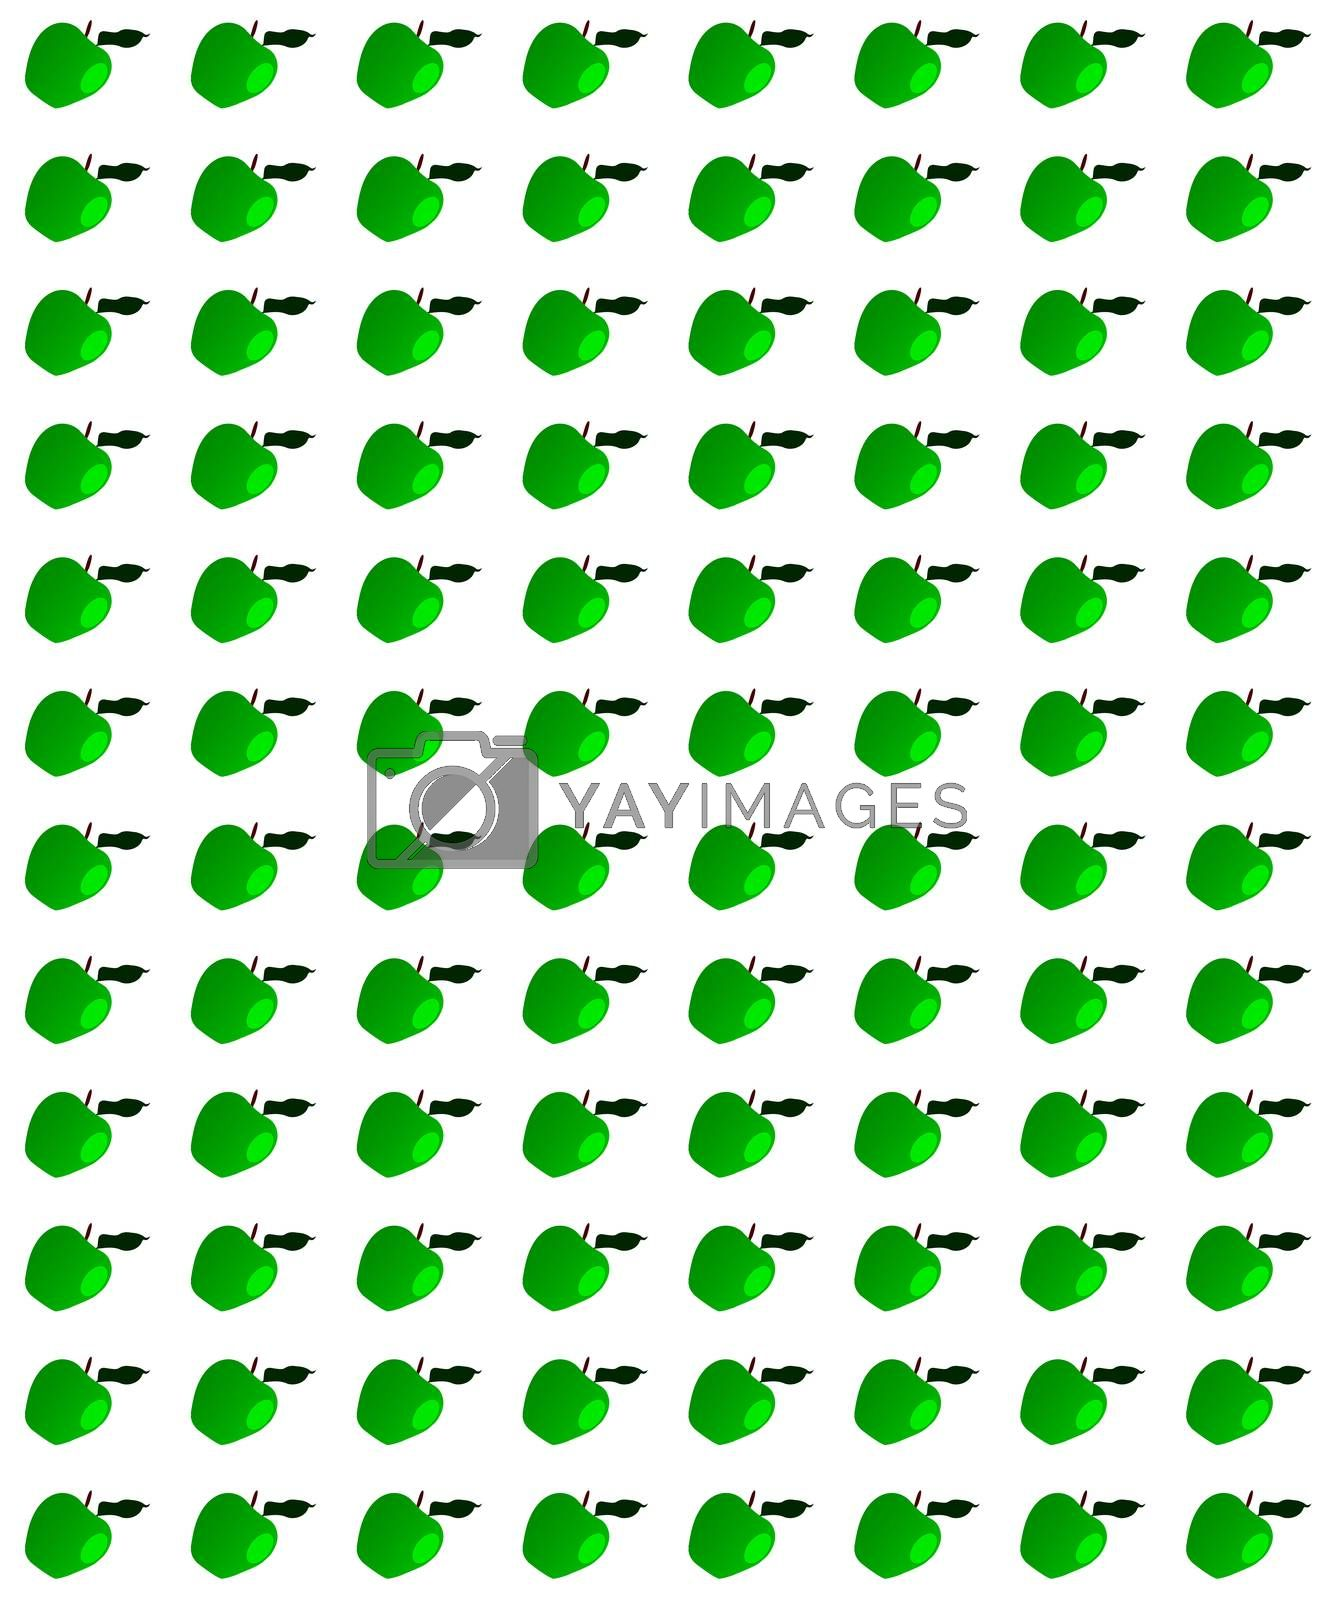 A page of green apples with stalks and leaves isolated on a white background